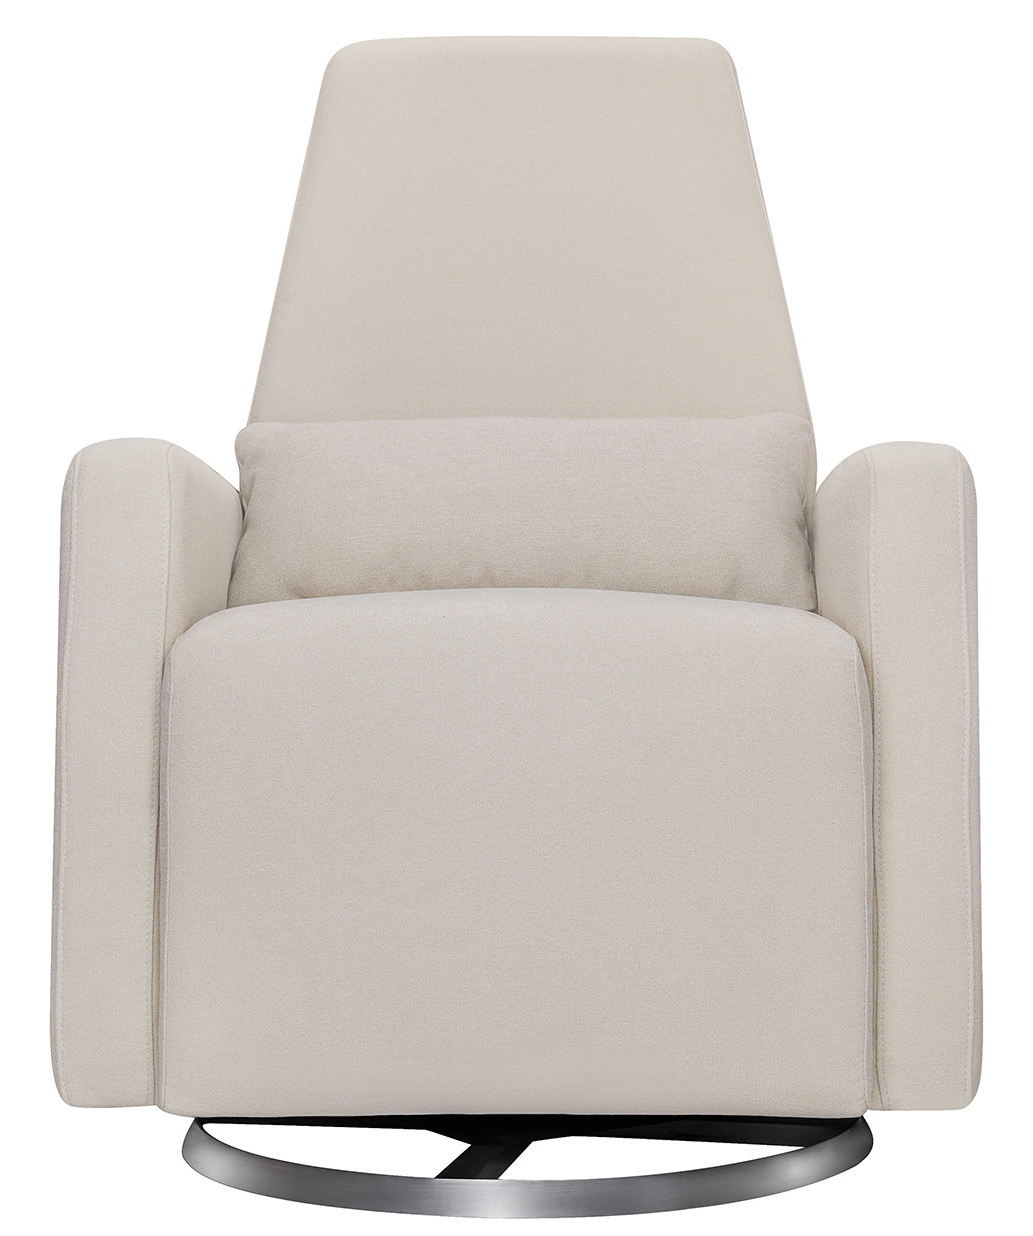 Allmodern With Mari Swivel Glider Recliners (View 7 of 20)